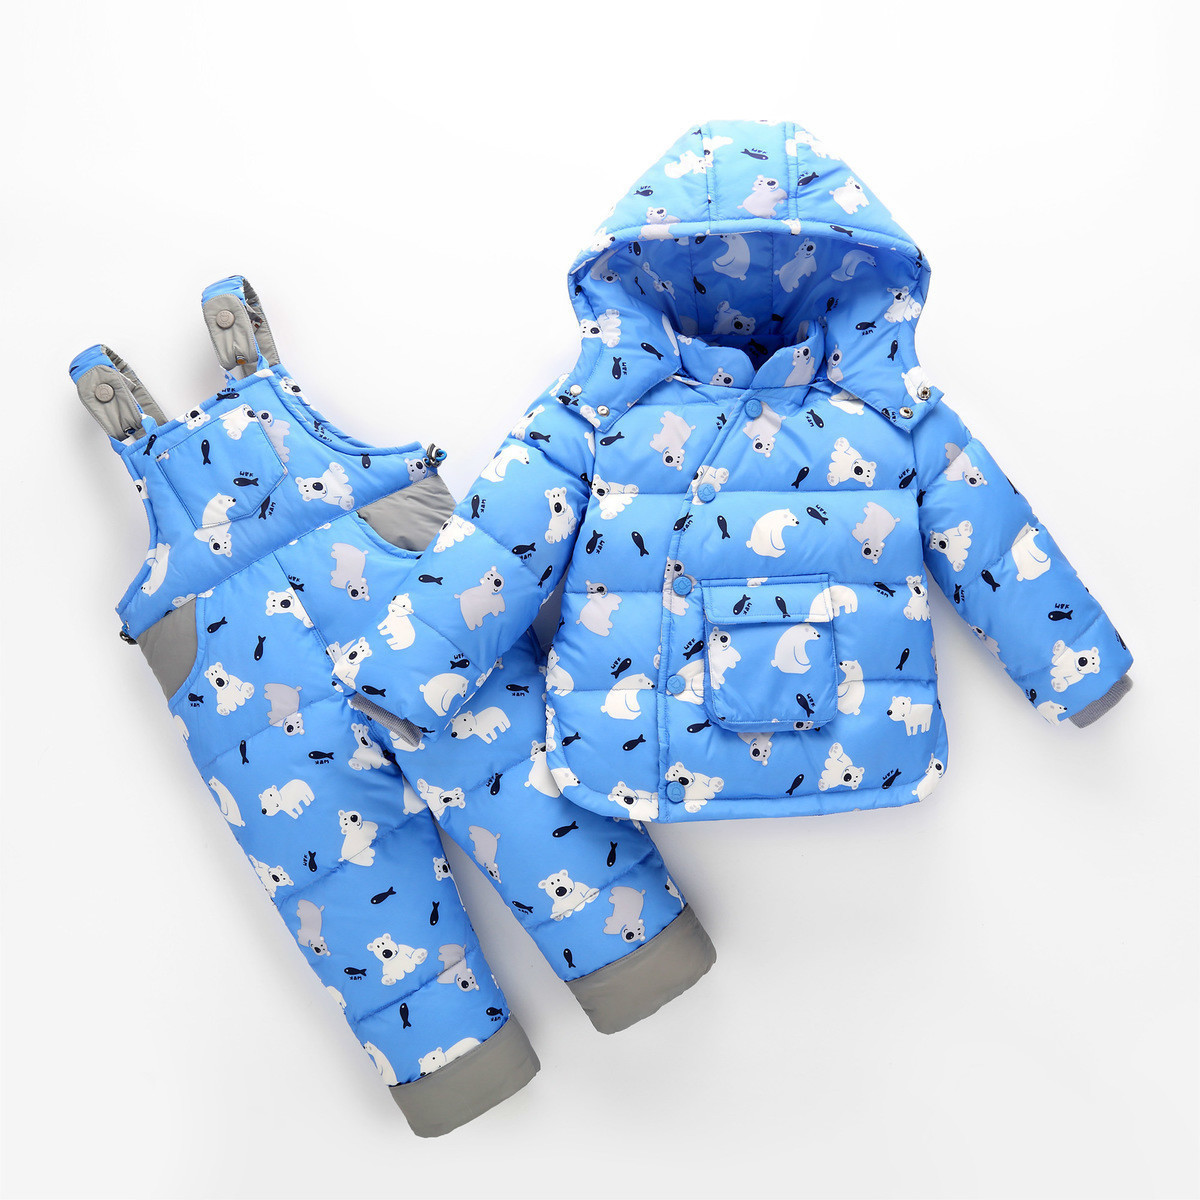 f3299202c8ab2 Boys Girls Infant Clothing Baby Winter Coats 2018 For Coat Duck Outwear  Toddler Snow Wear 2pcs Sets Cartoon Down Thick Snowsuit ~ Hot Deal June 2019